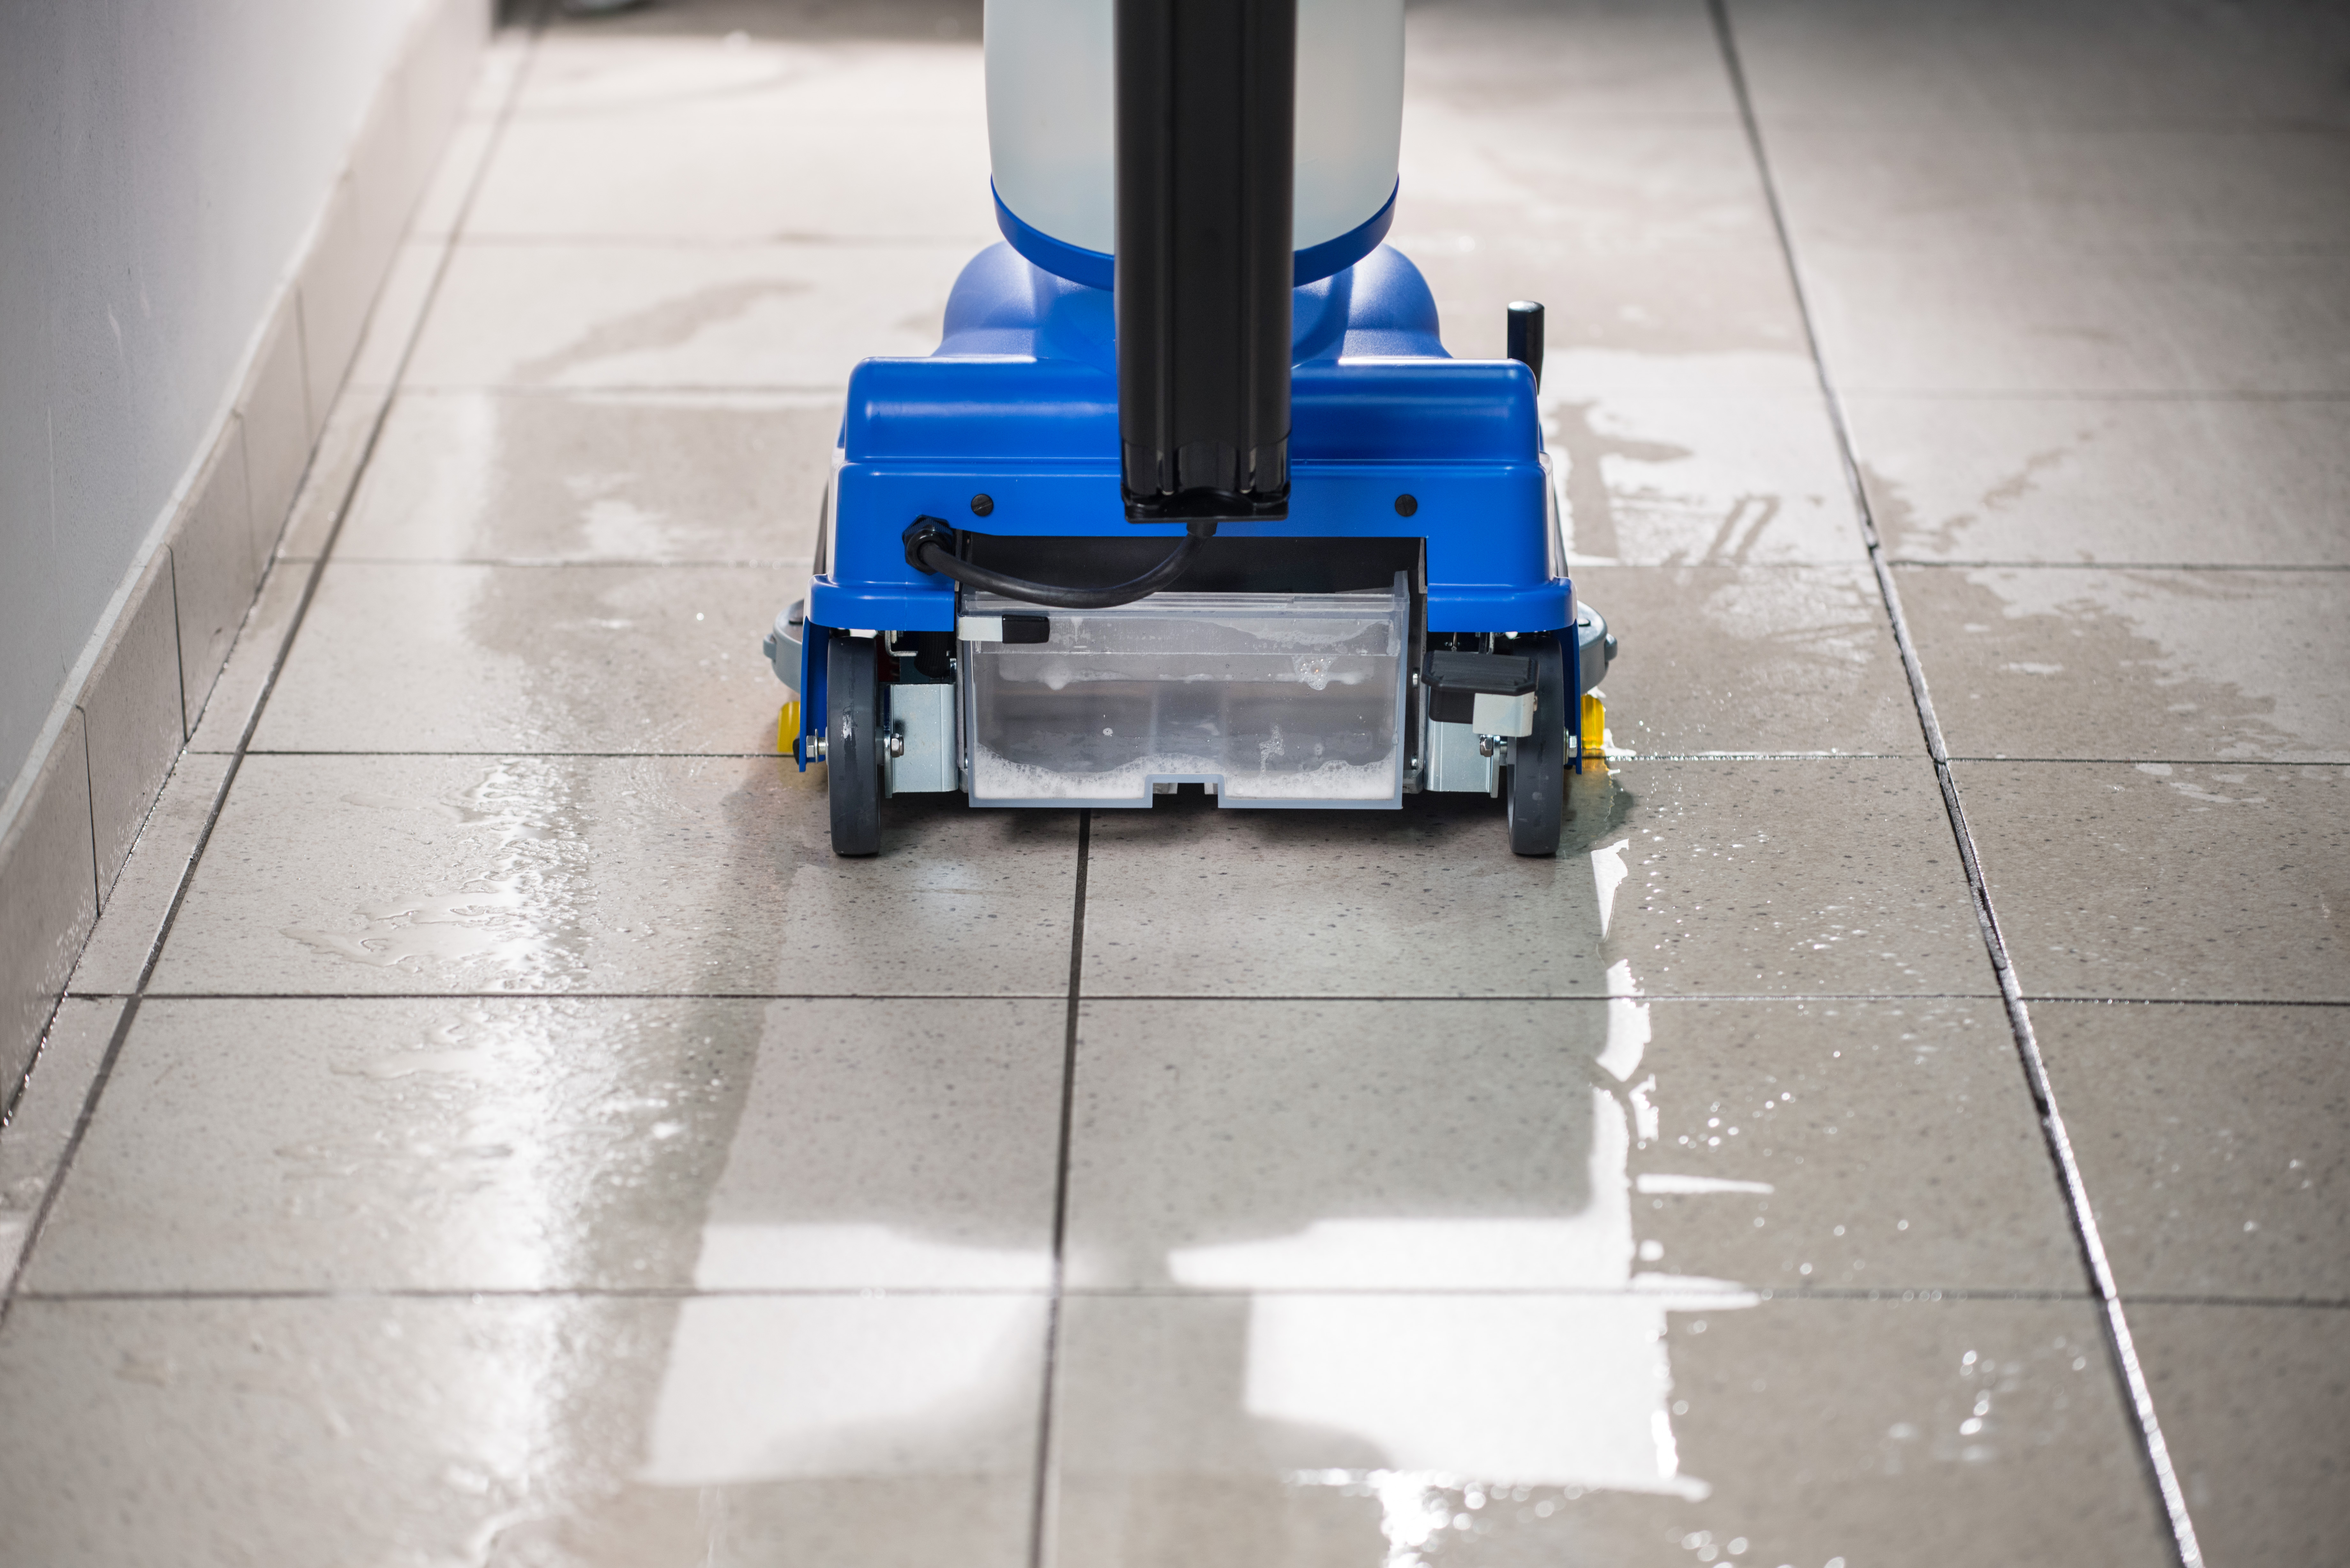 Scrubber dryer cordless scrubber floor scrubber floor cleaning the turbo 350 automatic floor scrubber dryer has a 4 ltr removable cleaning solution tank unlike most of its competitors it is fitted with a suction dailygadgetfo Choice Image